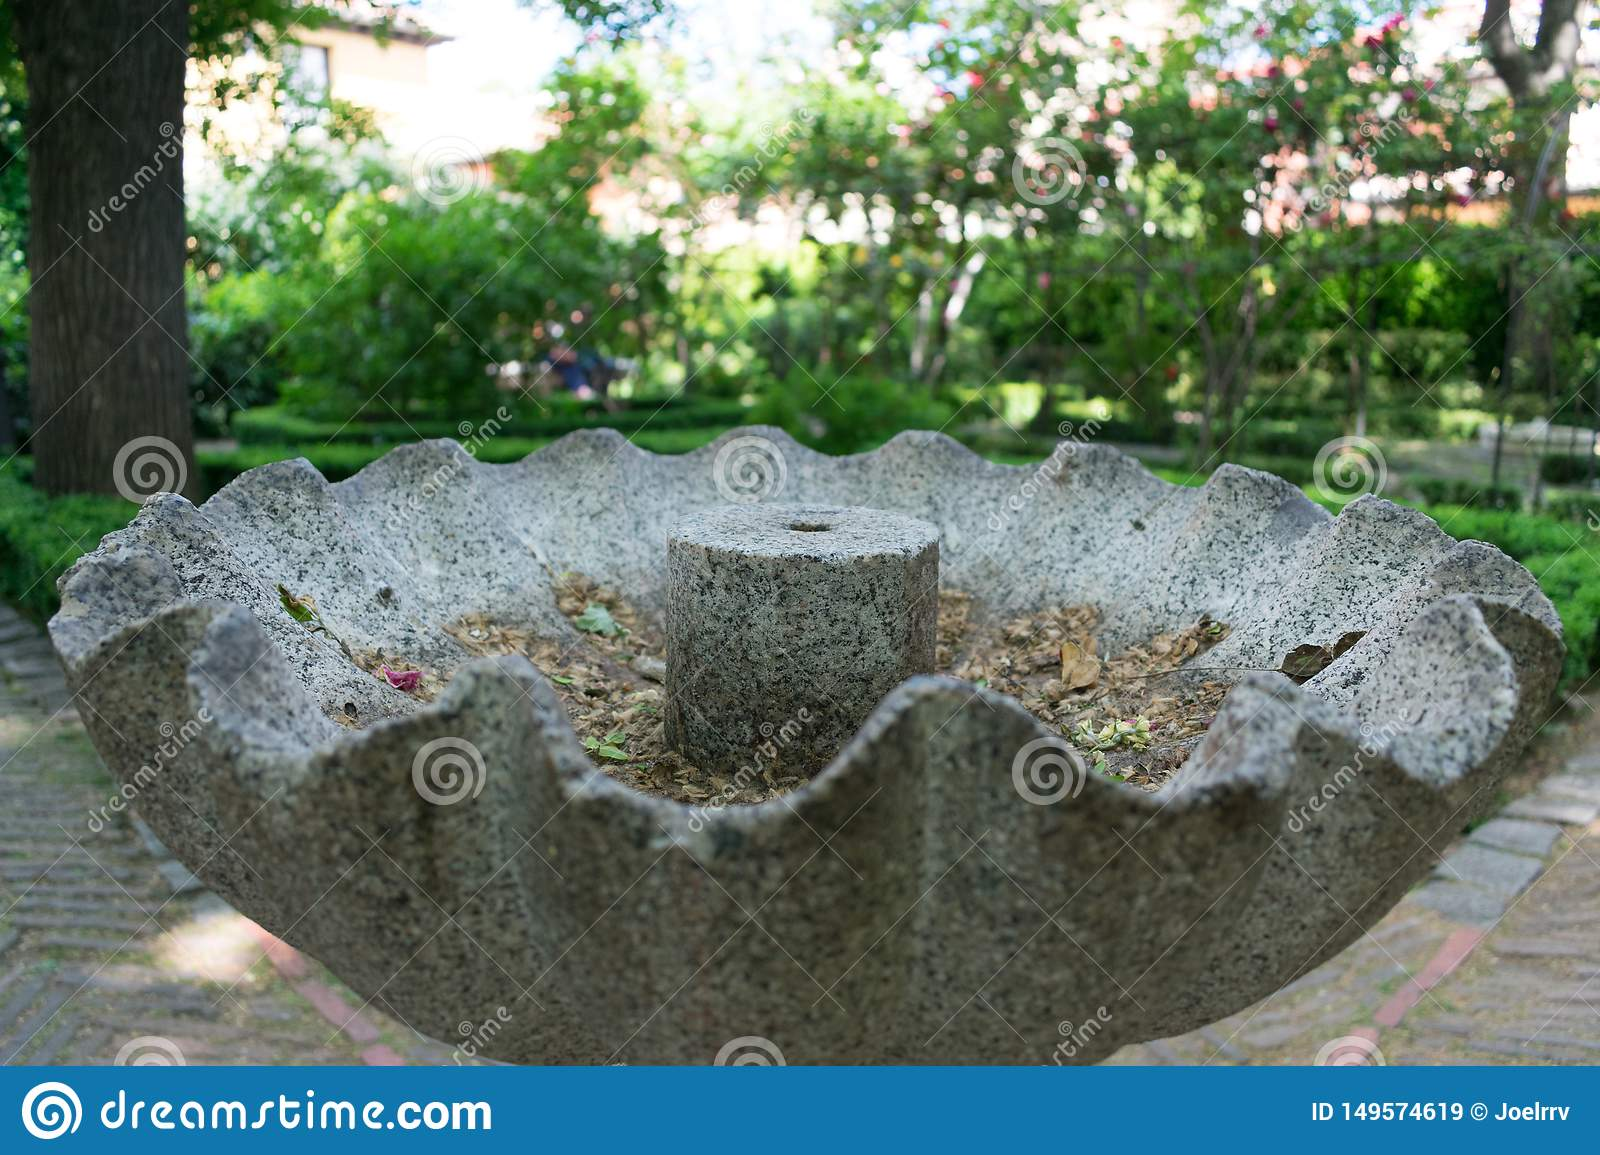 Closeup of old gray stone fountain in park